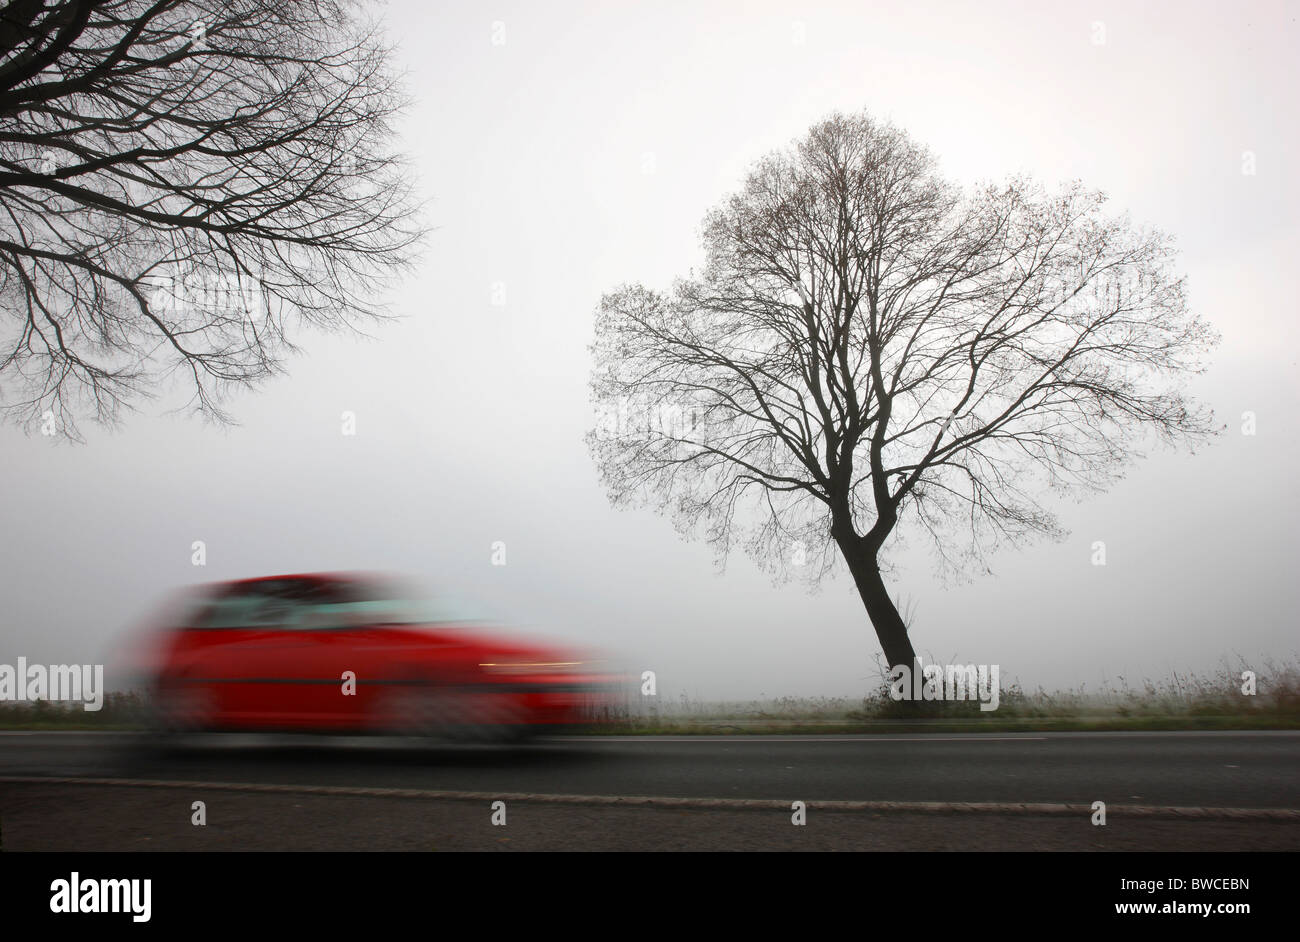 Autumn, thick fog, low visibility on a road. Essen, Germany. - Stock Image